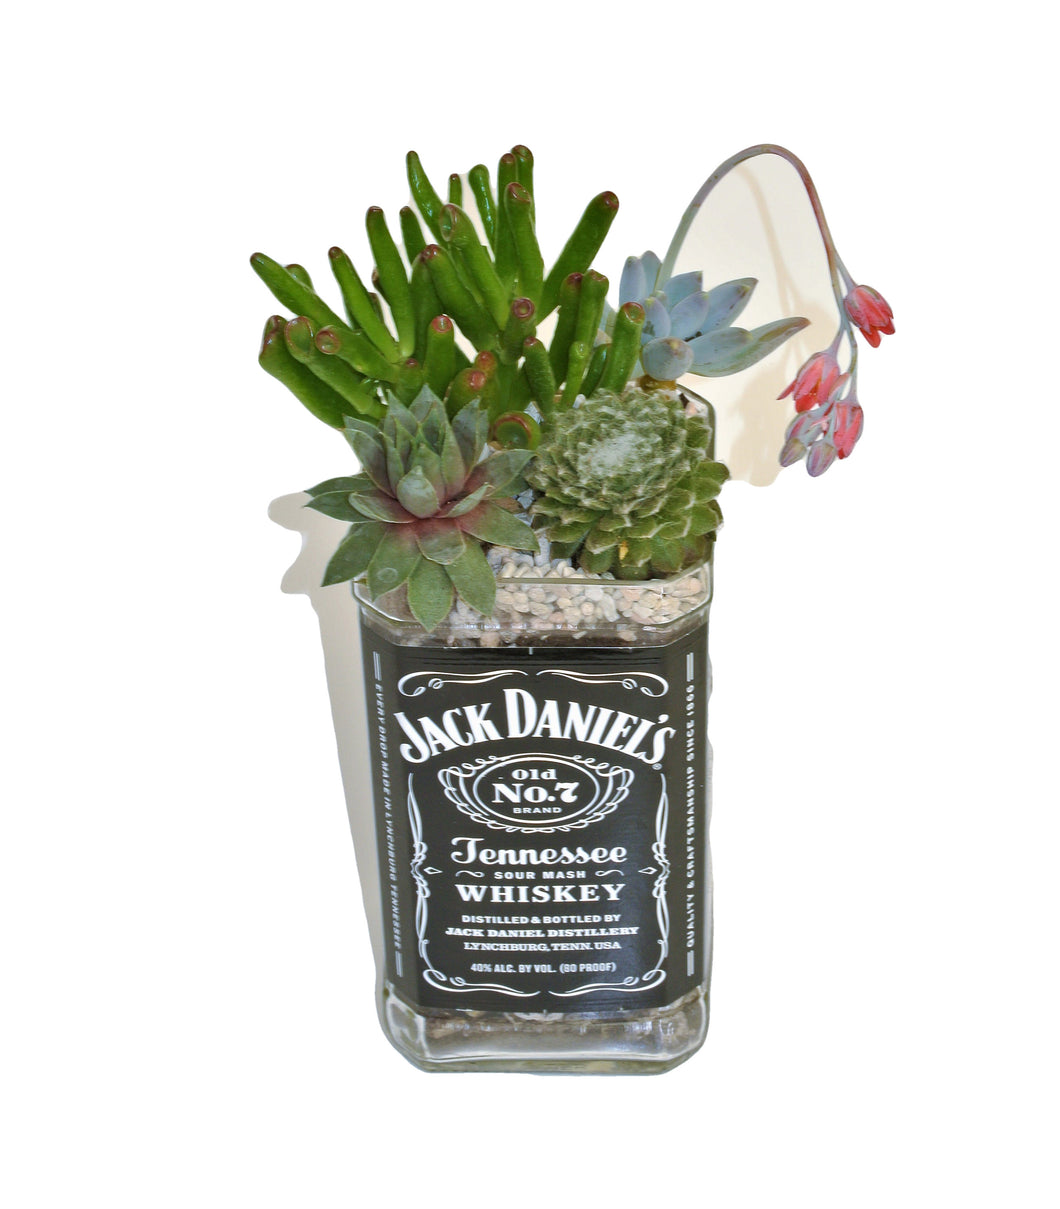 Jack Daniels Whiskey Bottle Planter - Succulent Gift